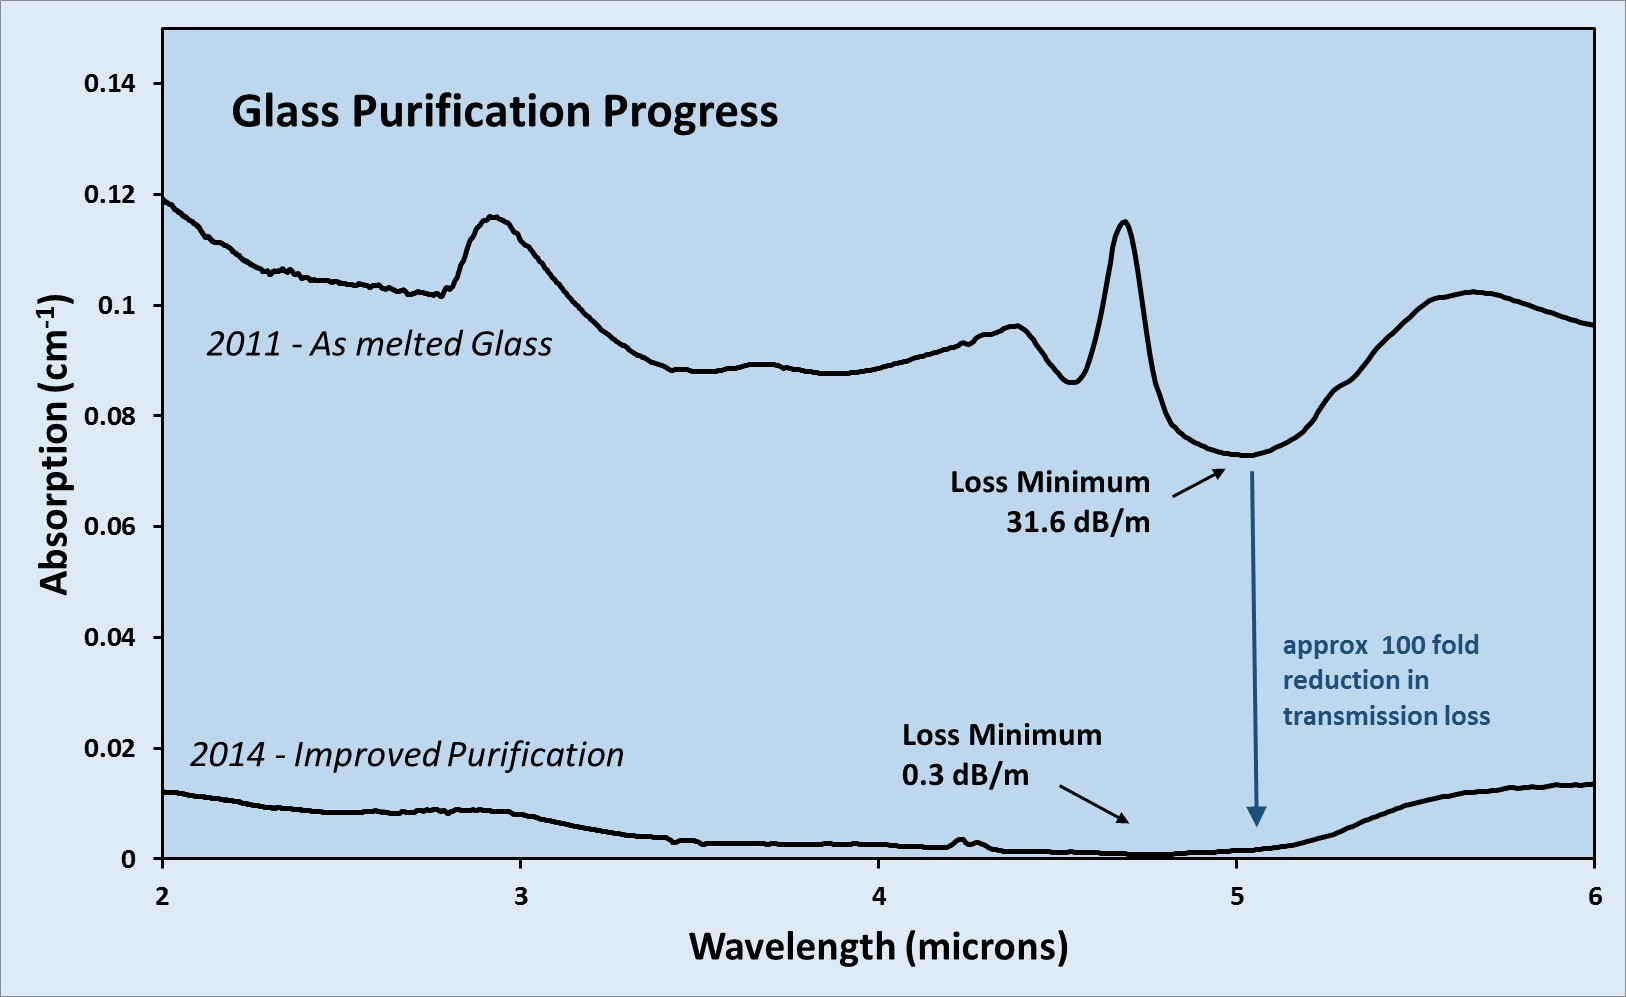 GLS Chalcogenide glass loss in 2-6 micron window